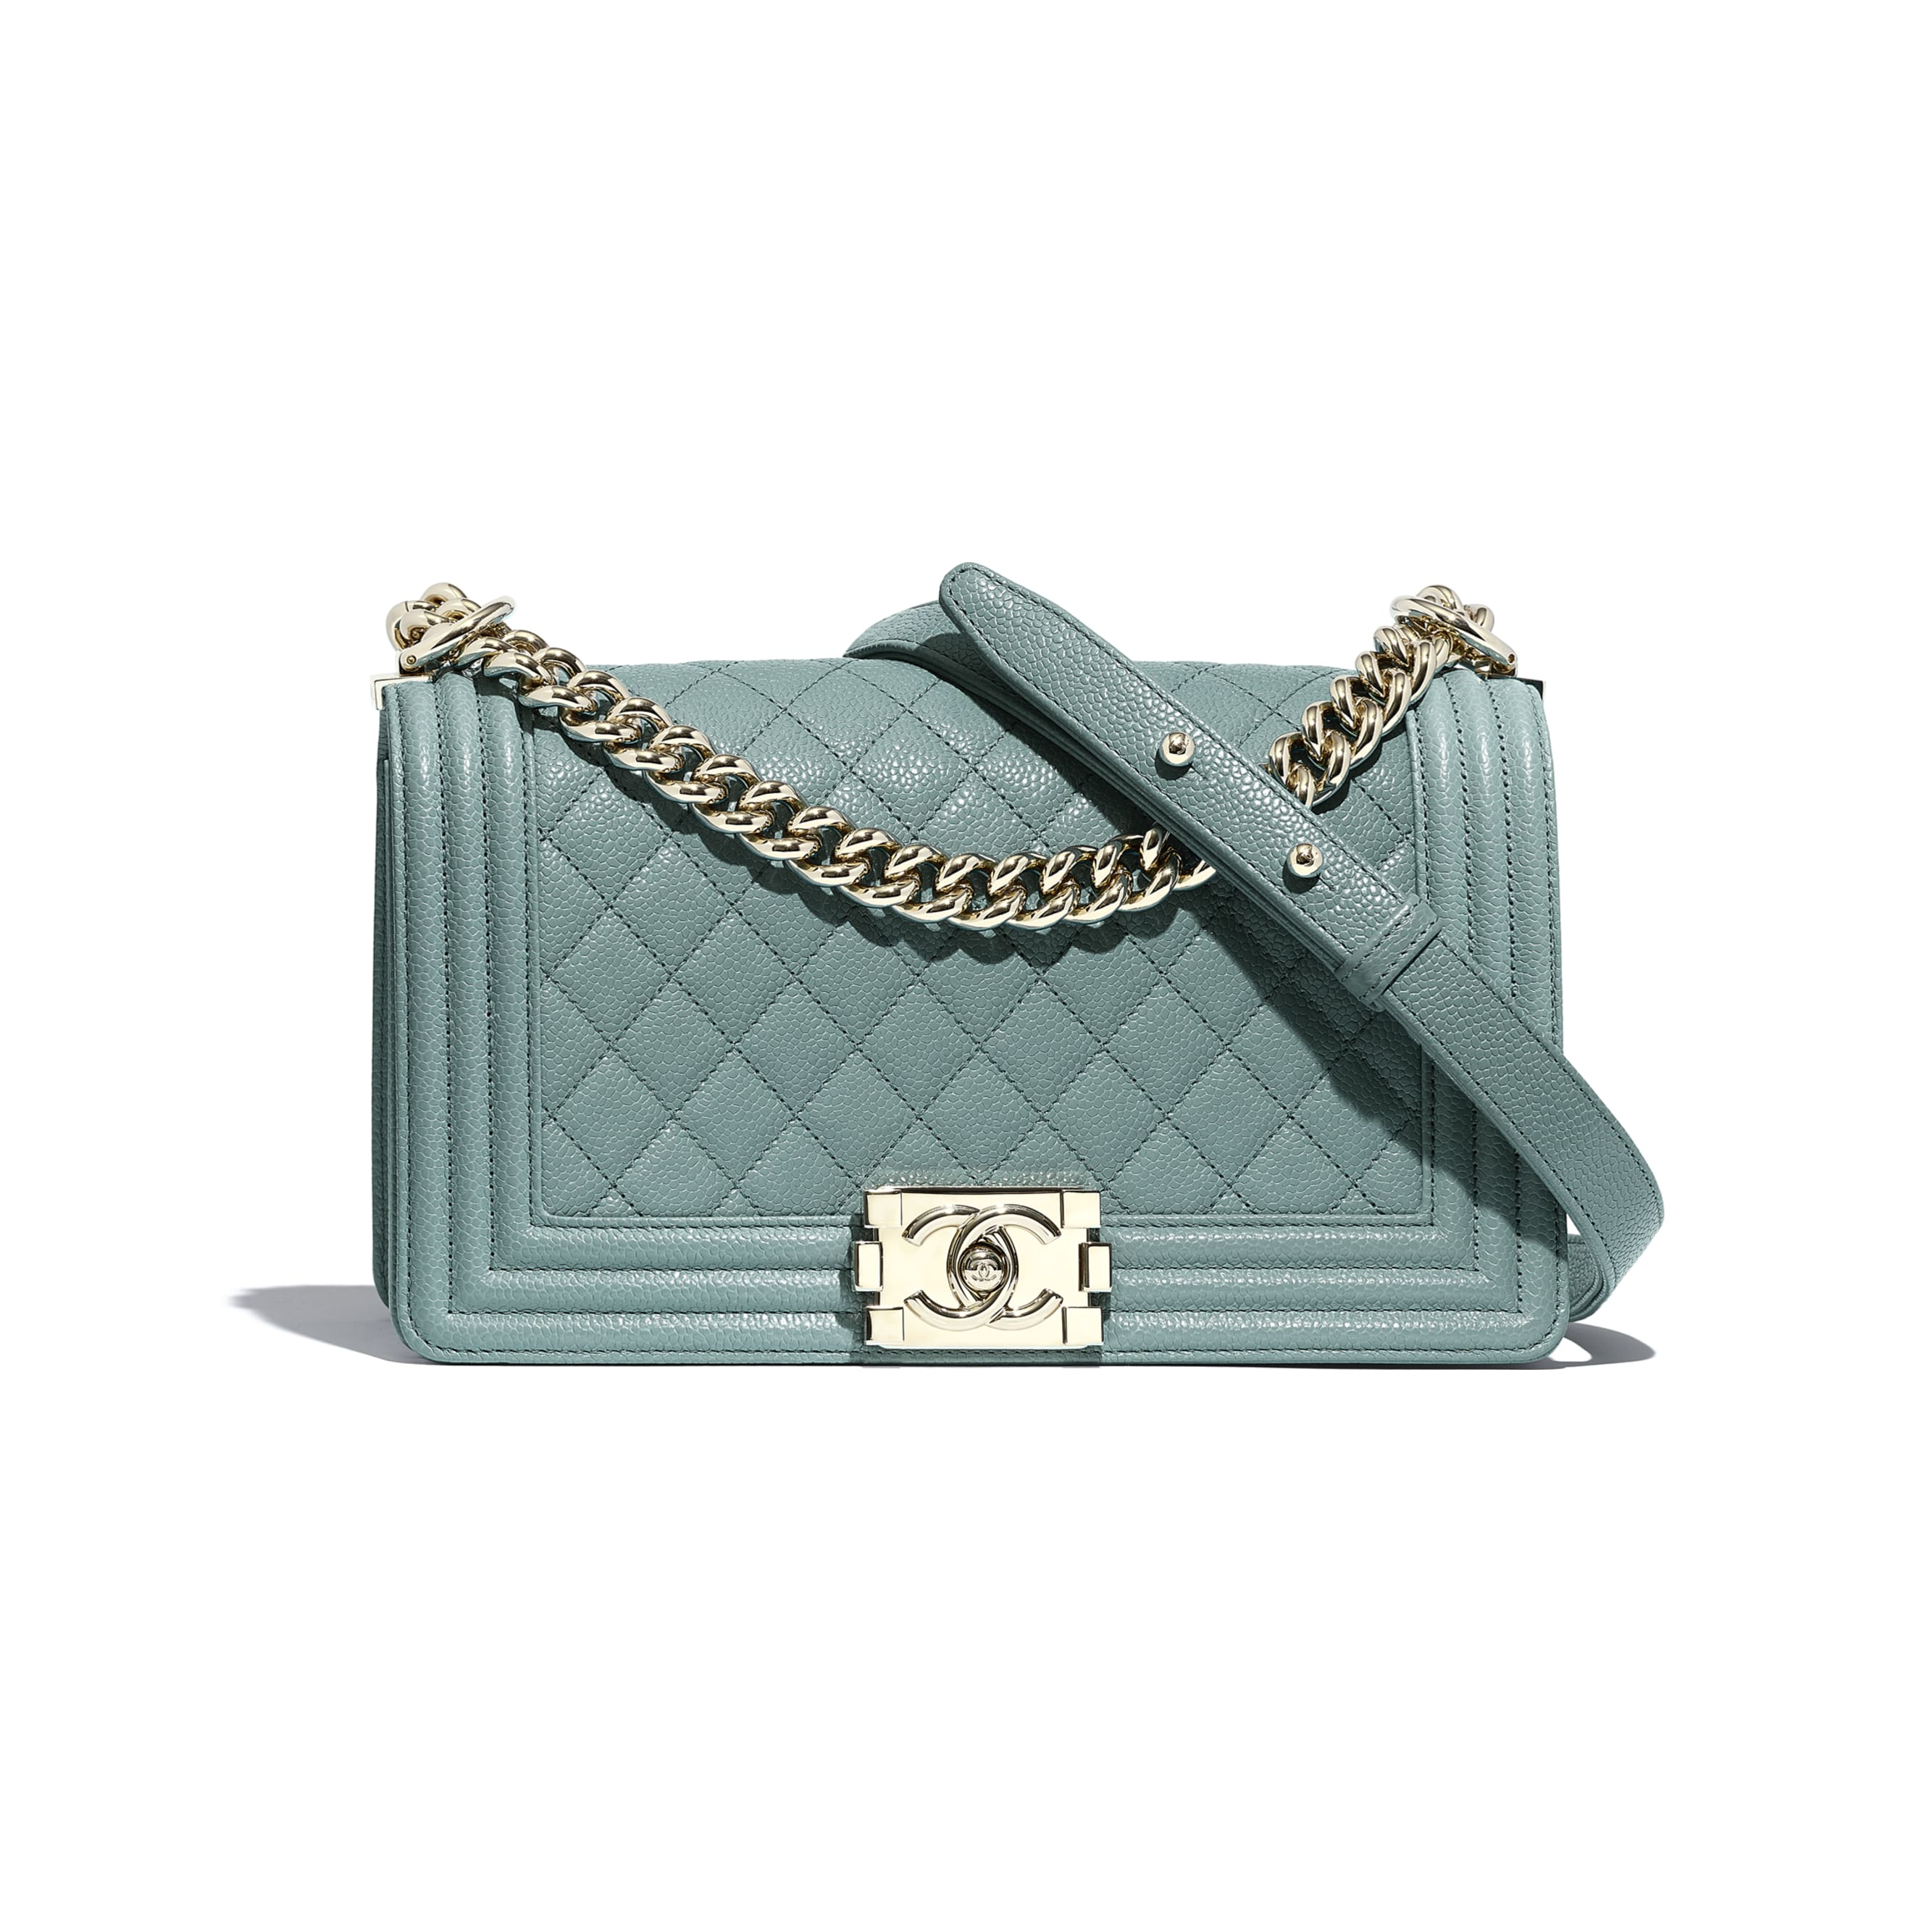 BOY CHANEL Handbag - Blue - Grained Calfskin & Gold-Tone Metal - CHANEL - Default view - see standard sized version